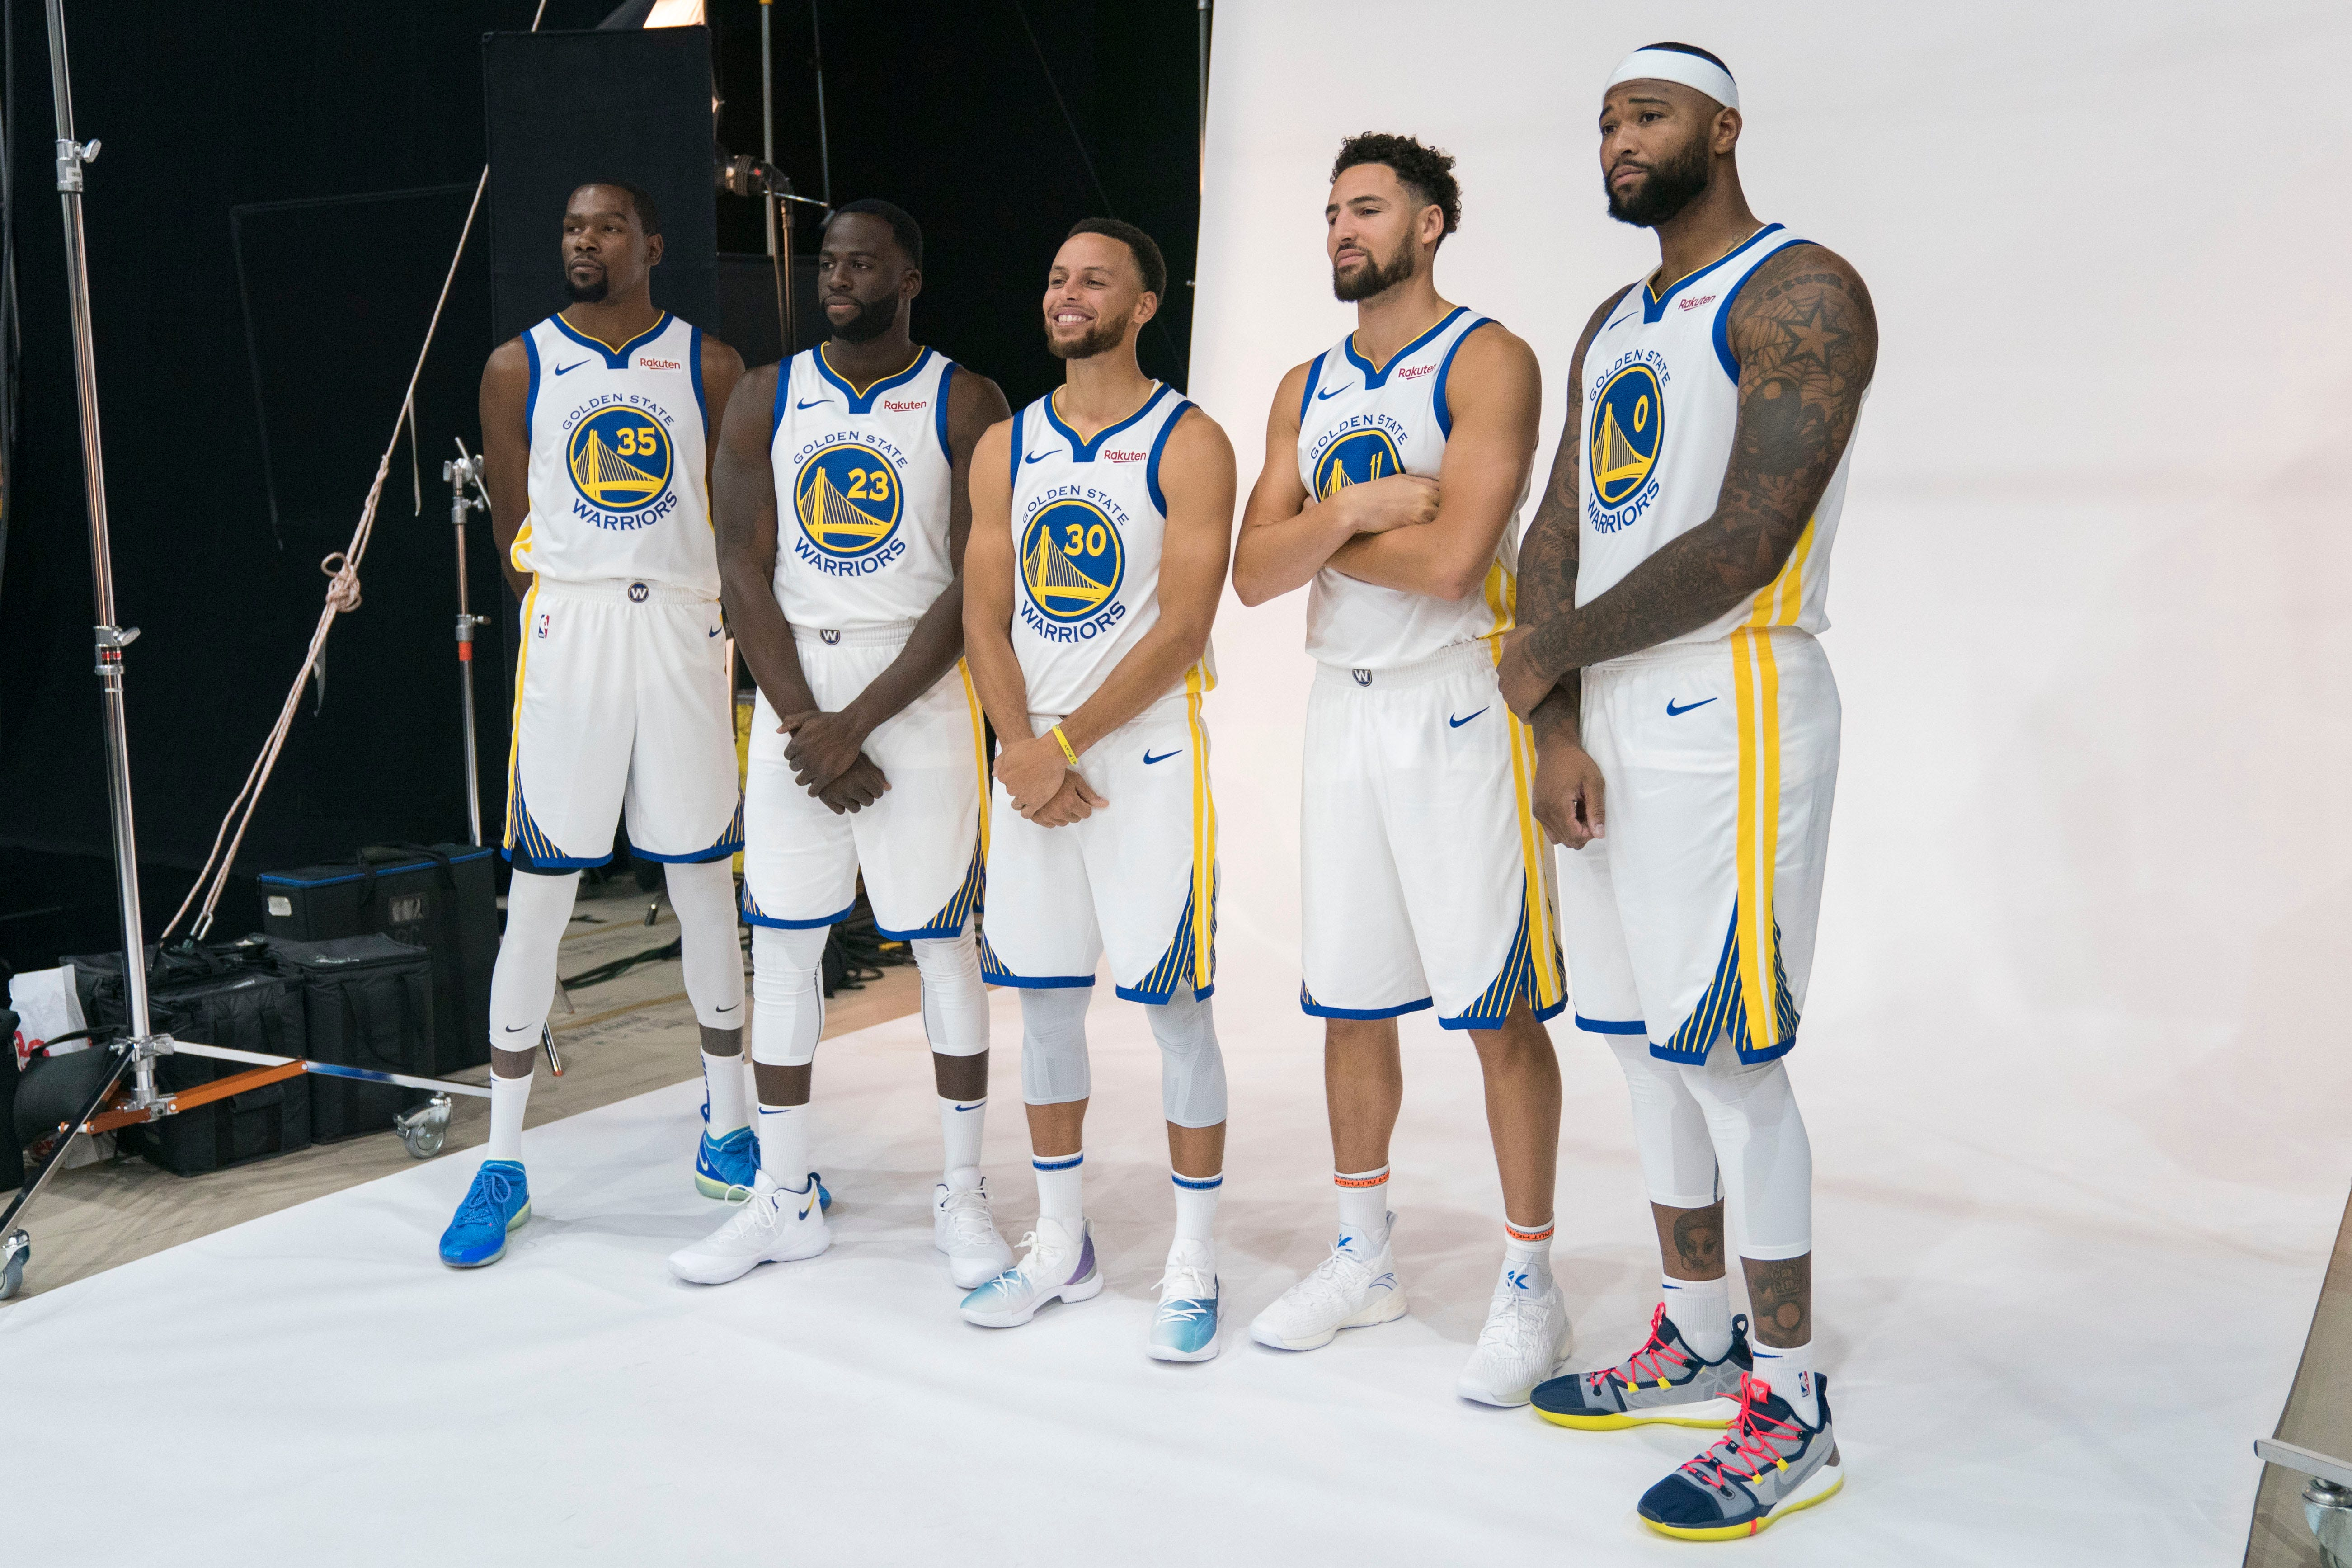 NBA champs could dominate Team USA roster